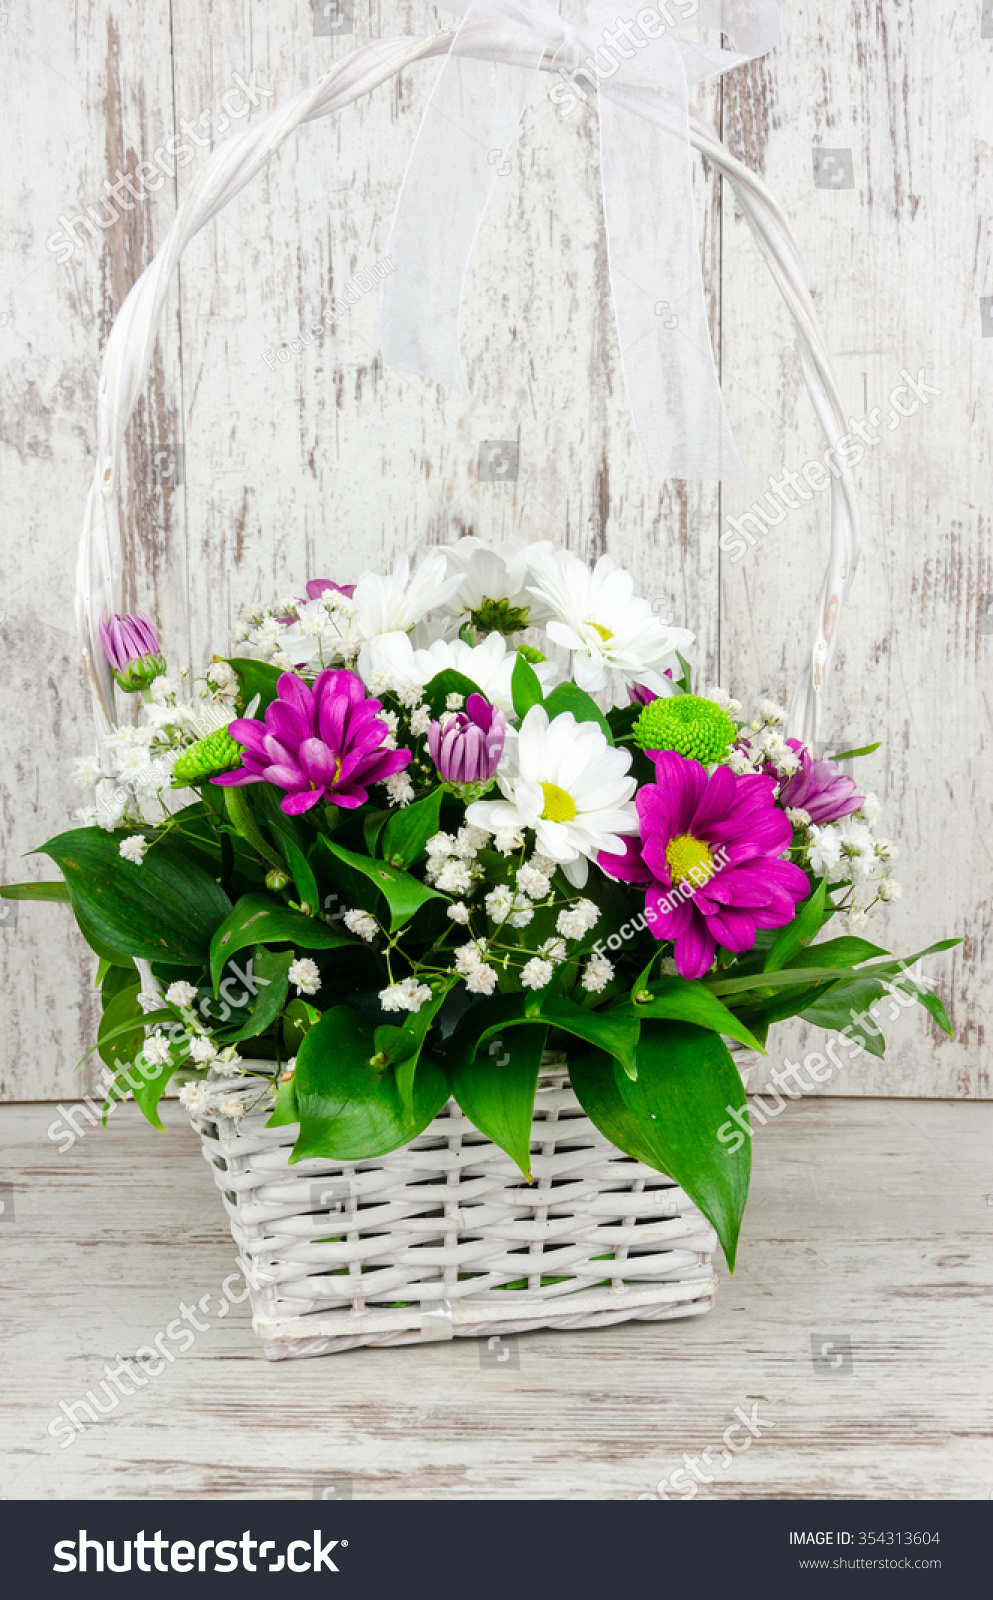 Beautiful unique arrangement of flowers for gift womens day id 354313604 izmirmasajfo